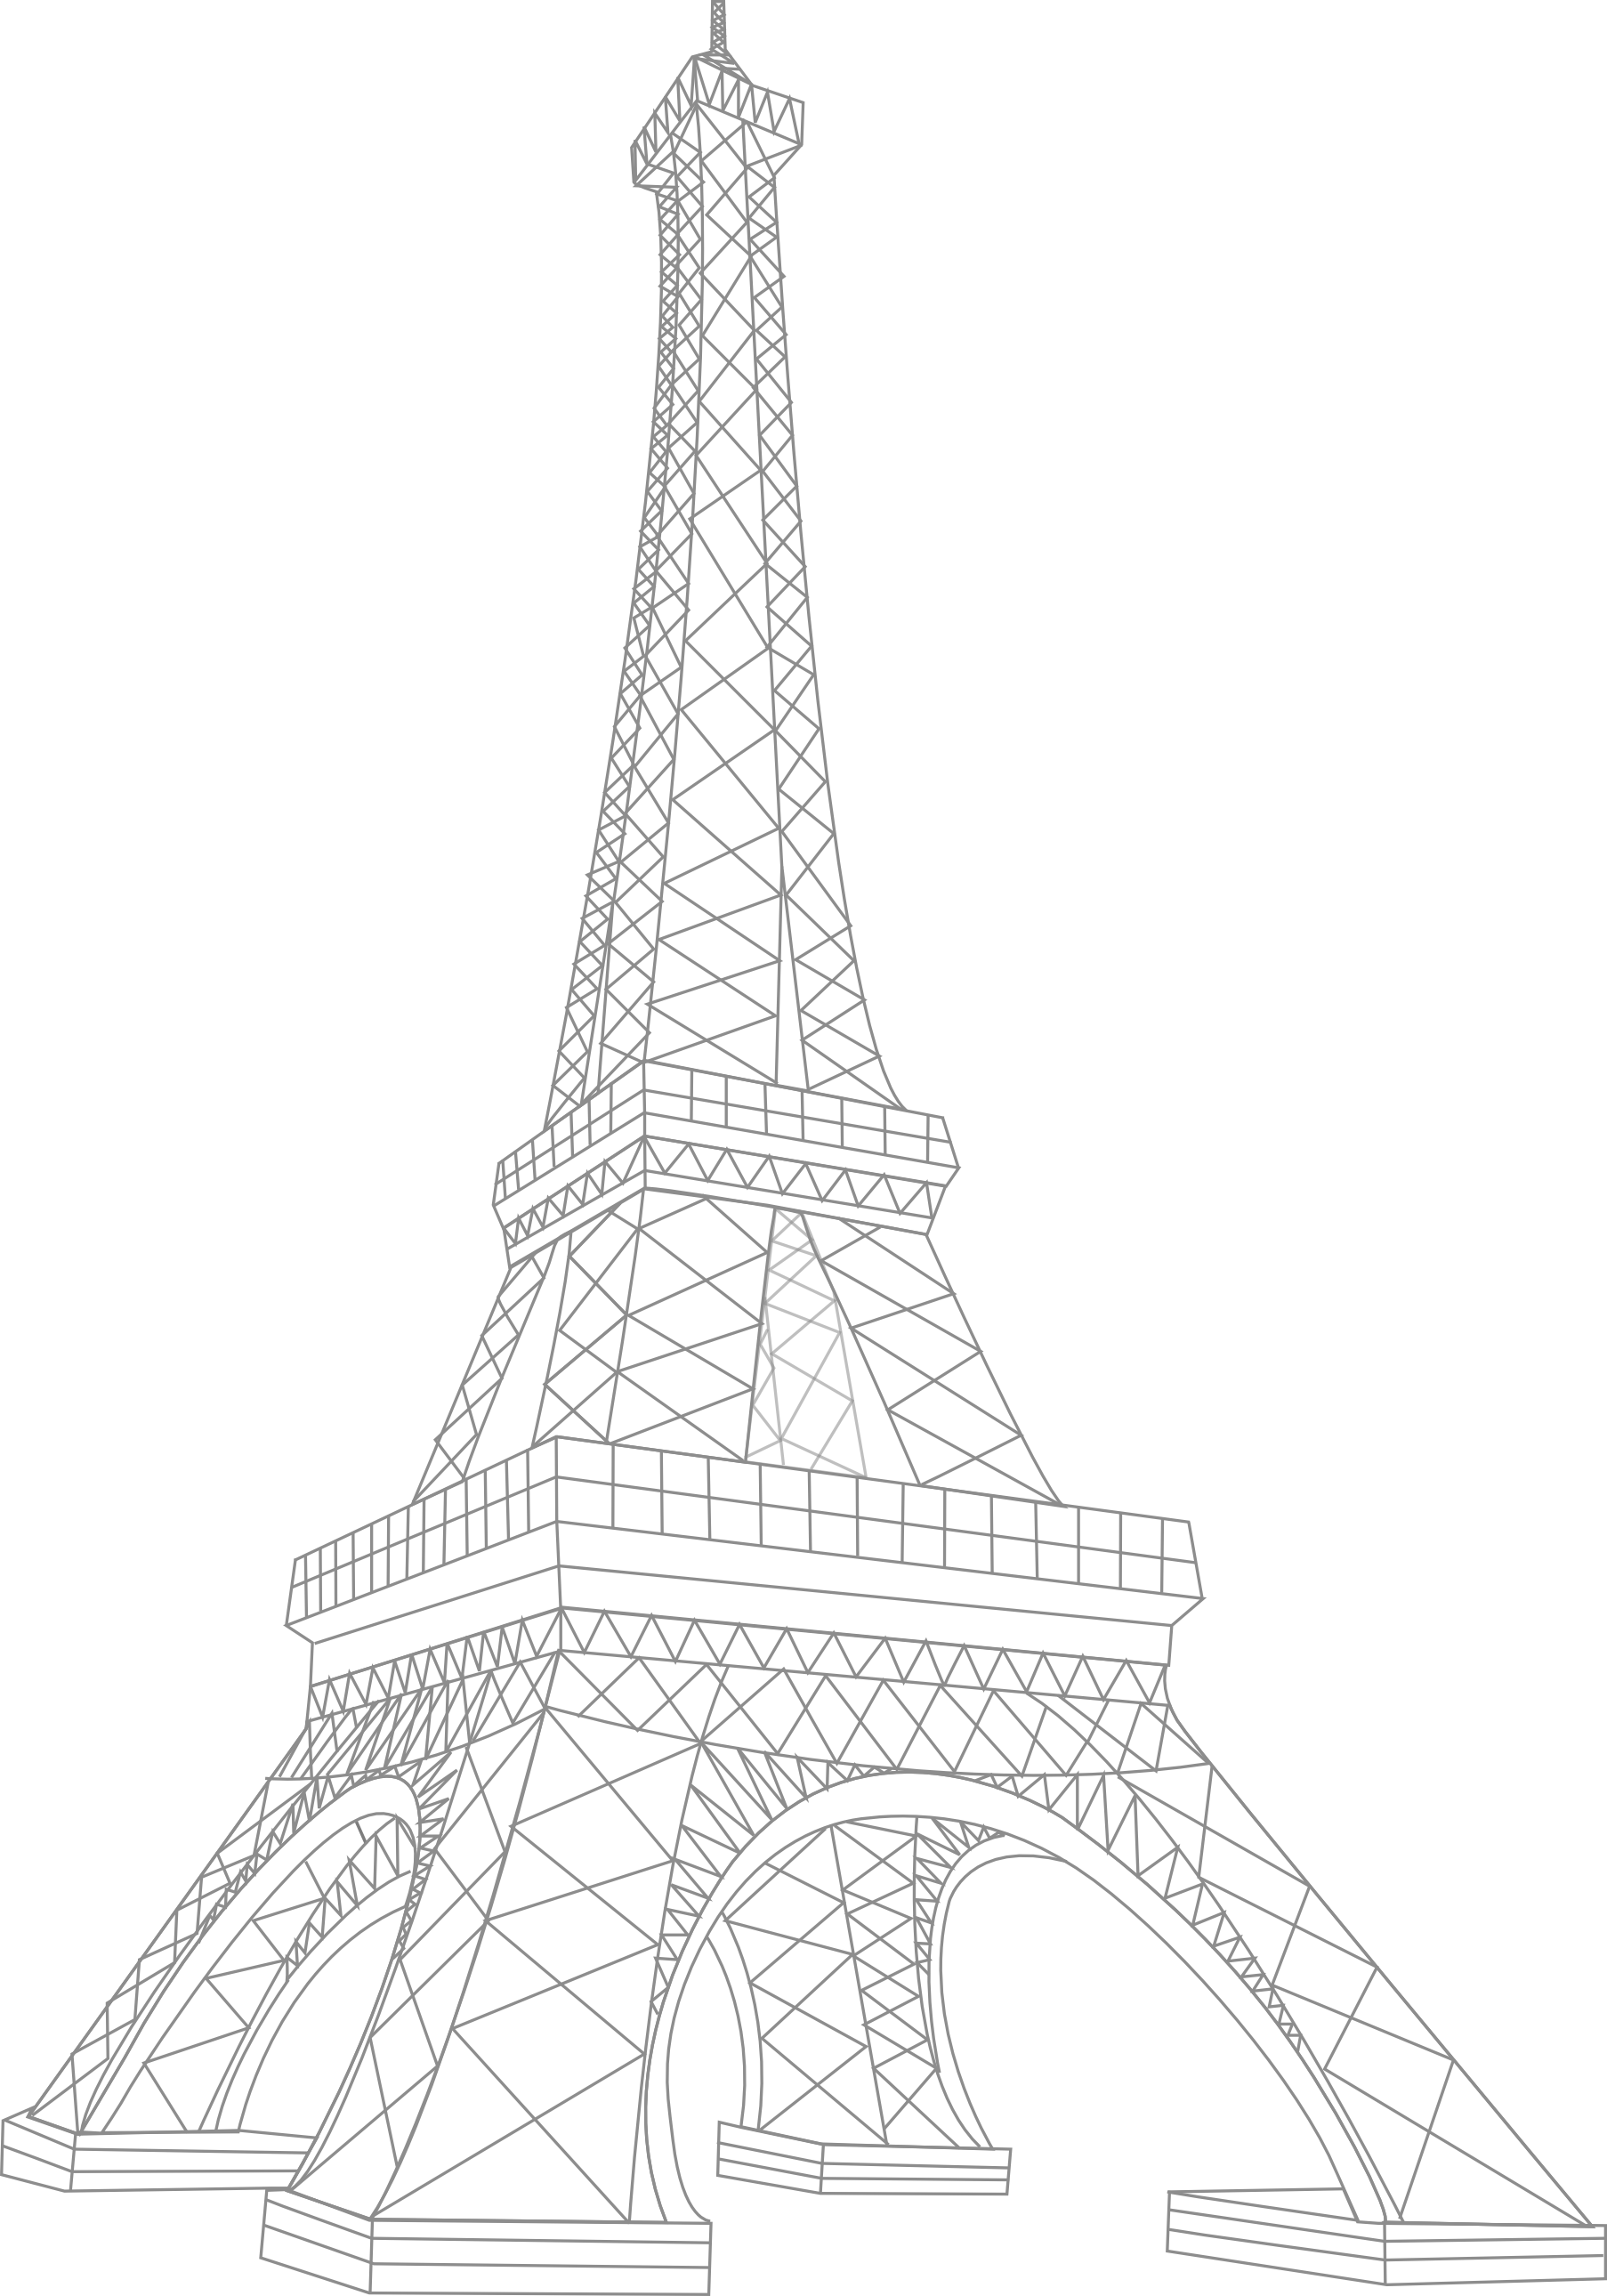 eifell tower drawing the happy booker vive la reb drawing tower eifell